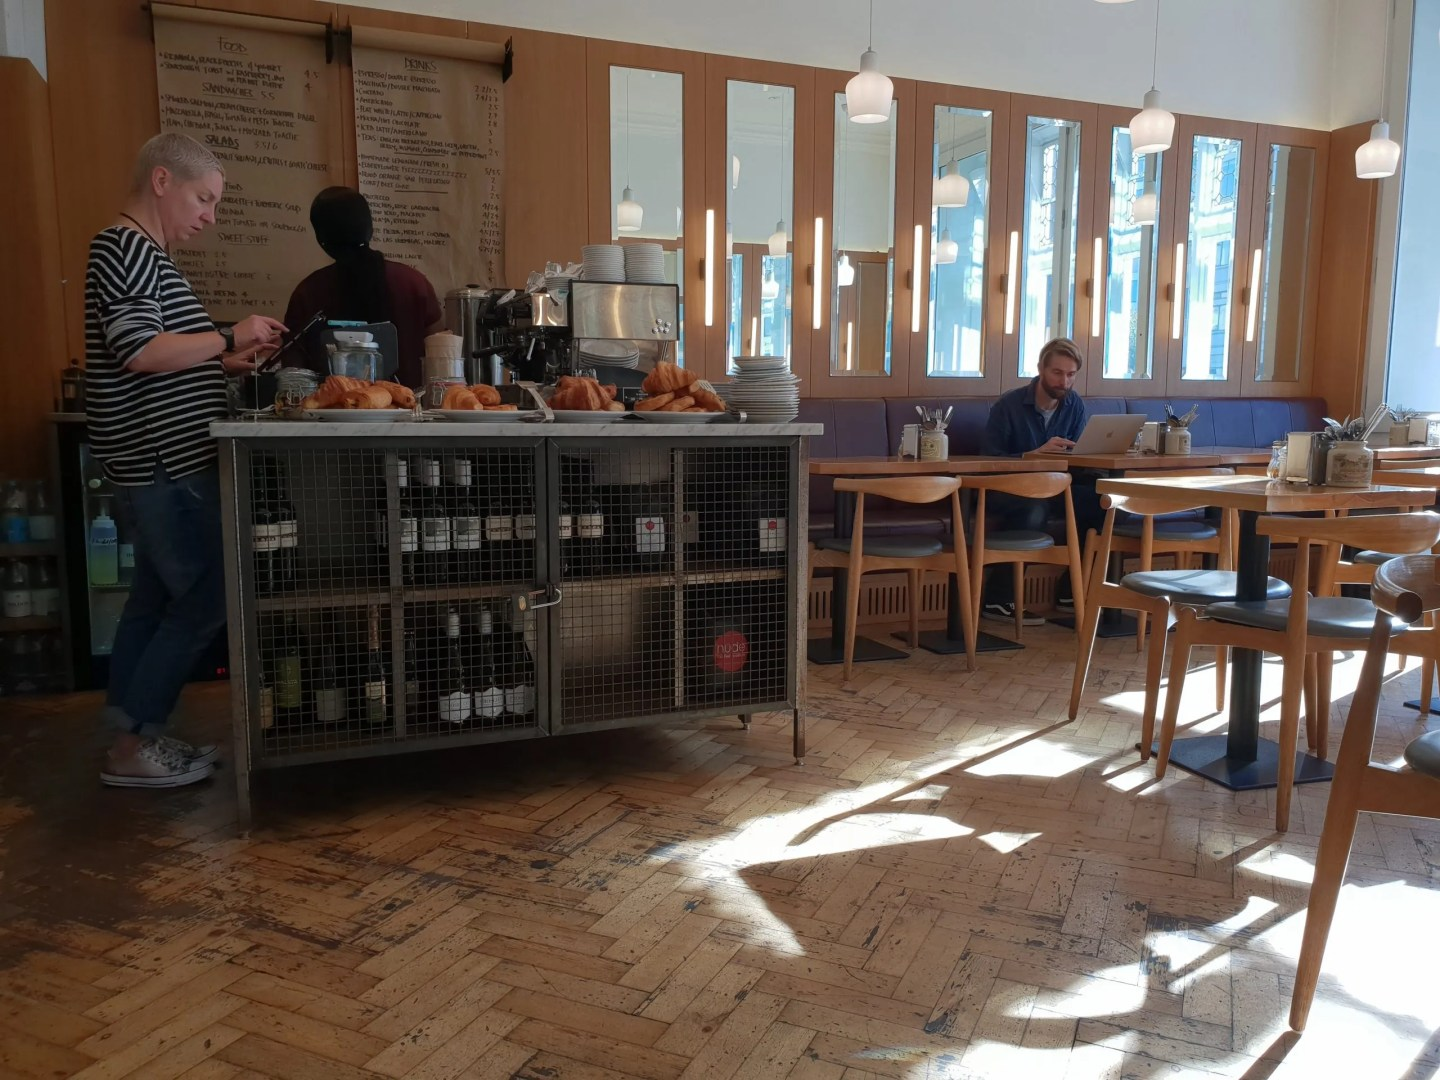 Whitechapel Gallery cafe